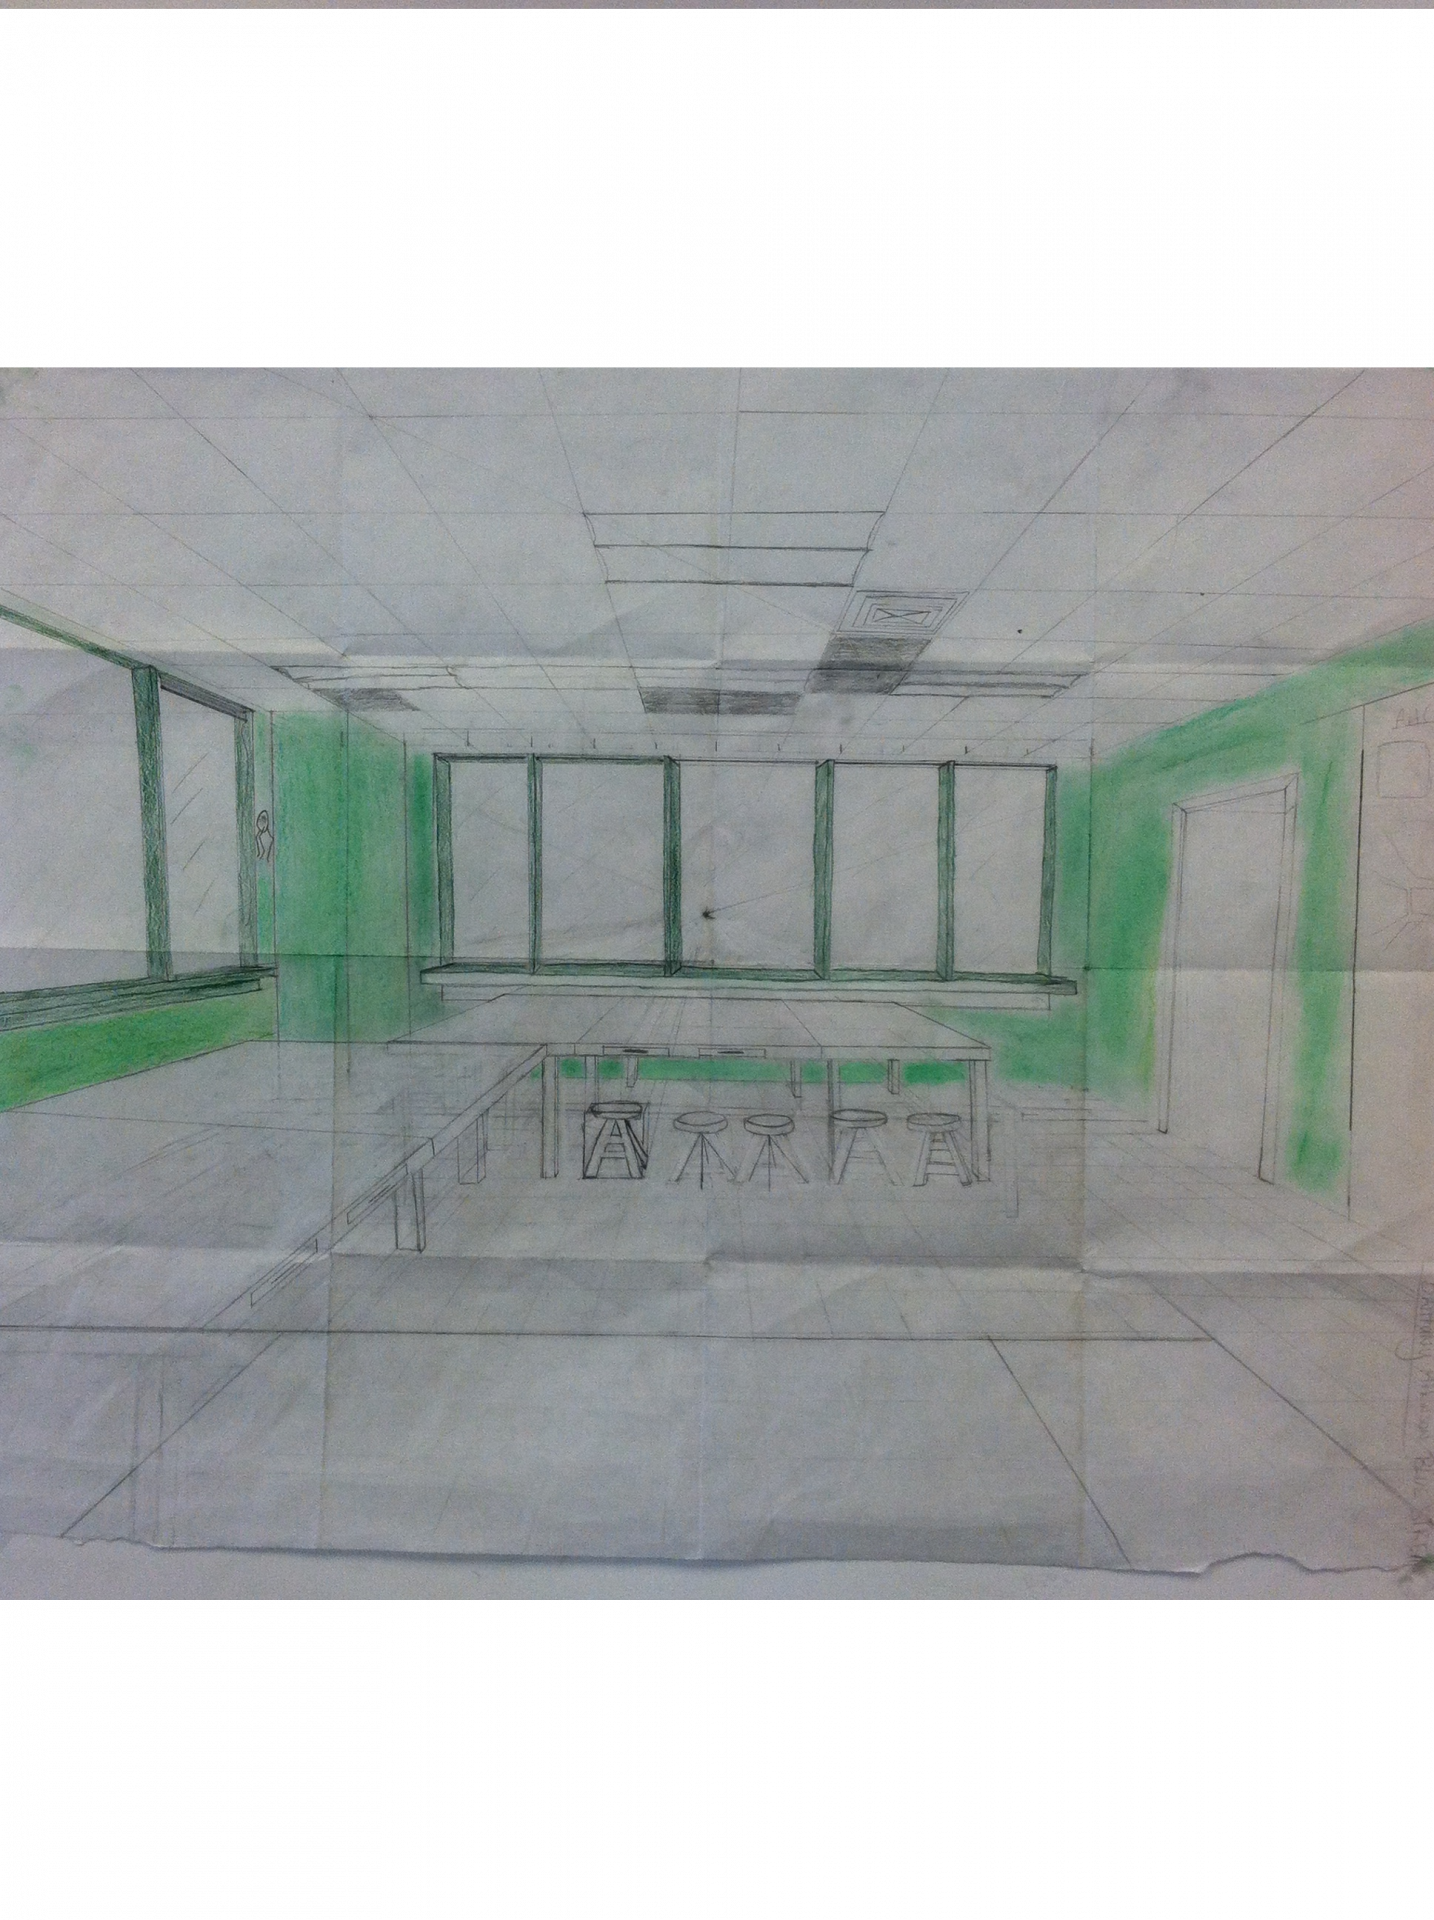 Drawing science. Final perspective leadership academy